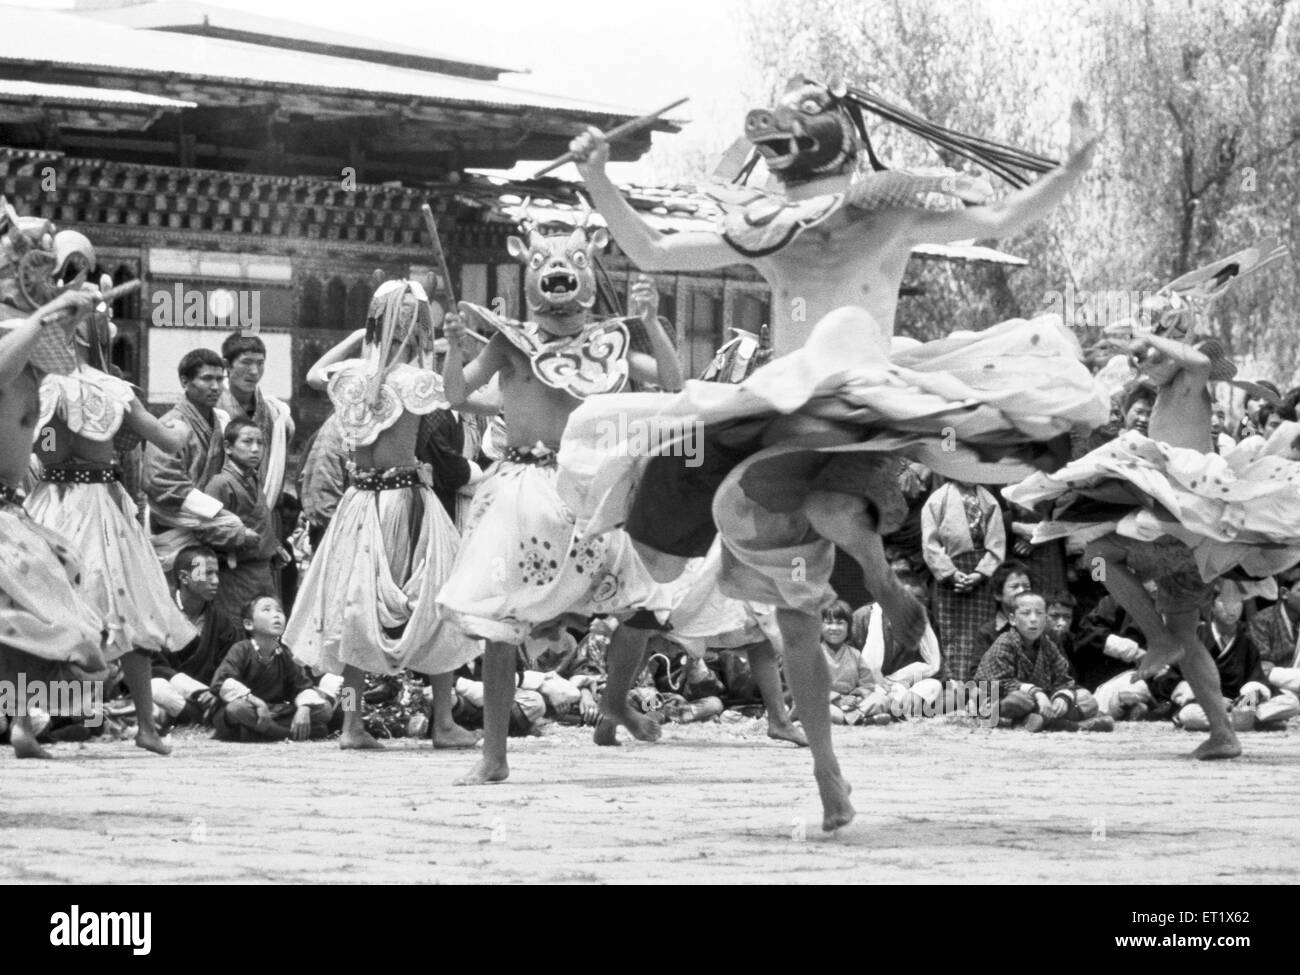 Dancer in full regalia performs at the Thetchu festival in the courtyard of the Dzong at Paro ; Bhutan - Stock Image